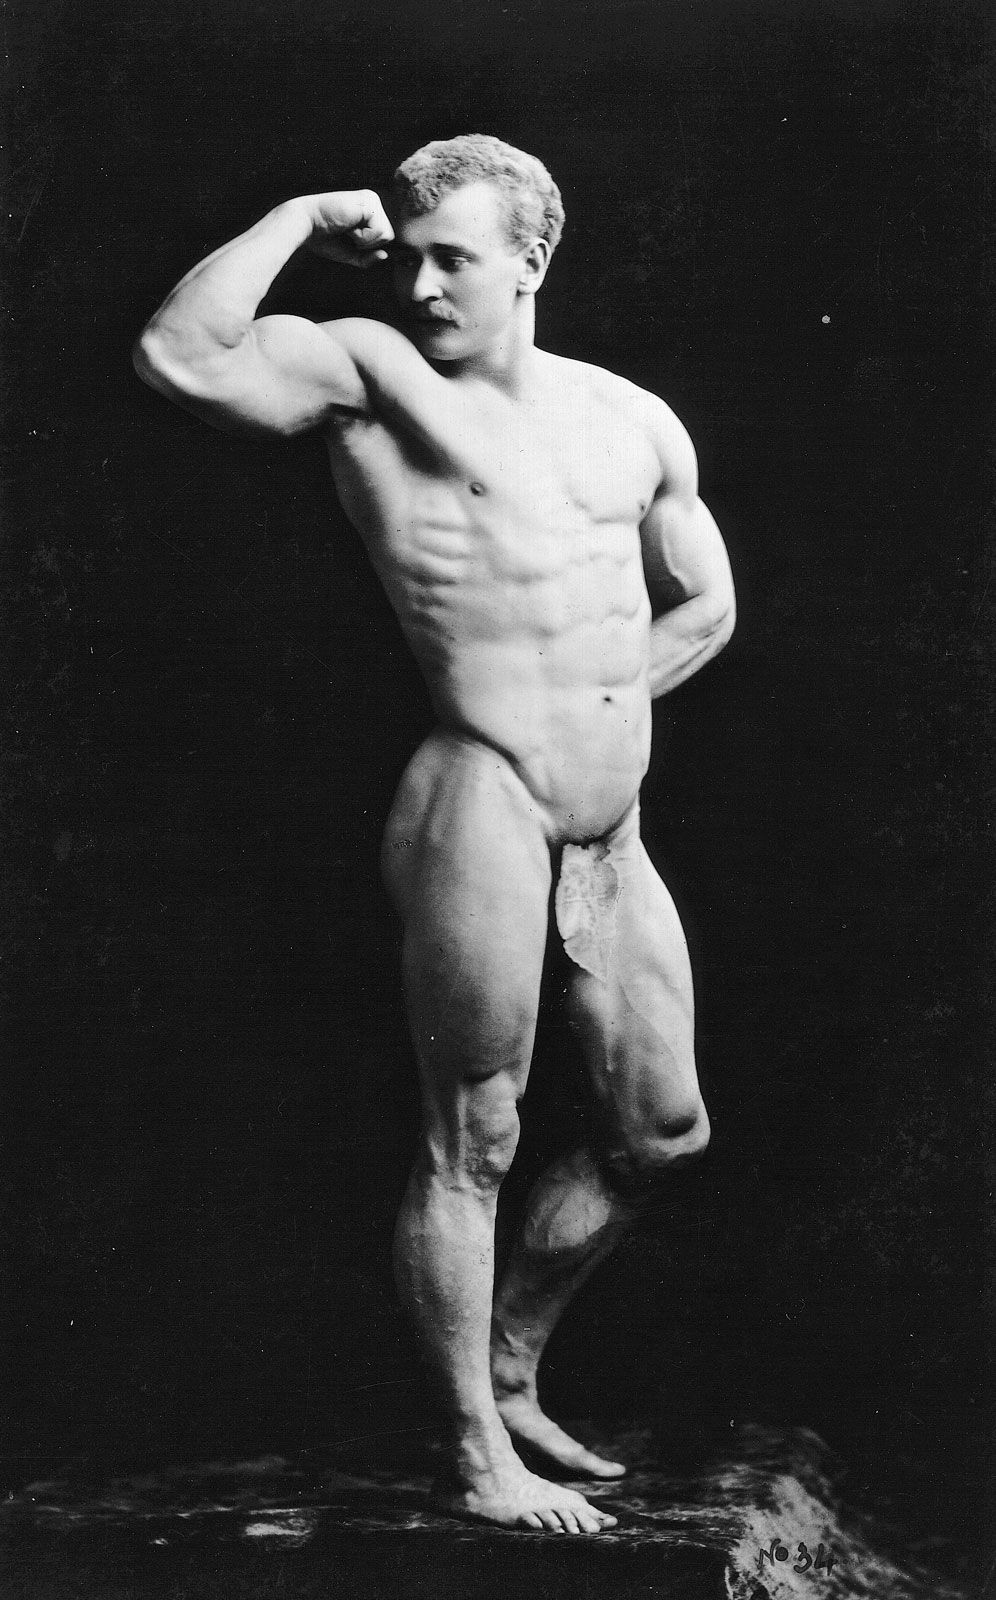 Eugen Sandow (April 2, 1867 – October 14, 1925), born Friedrich ...